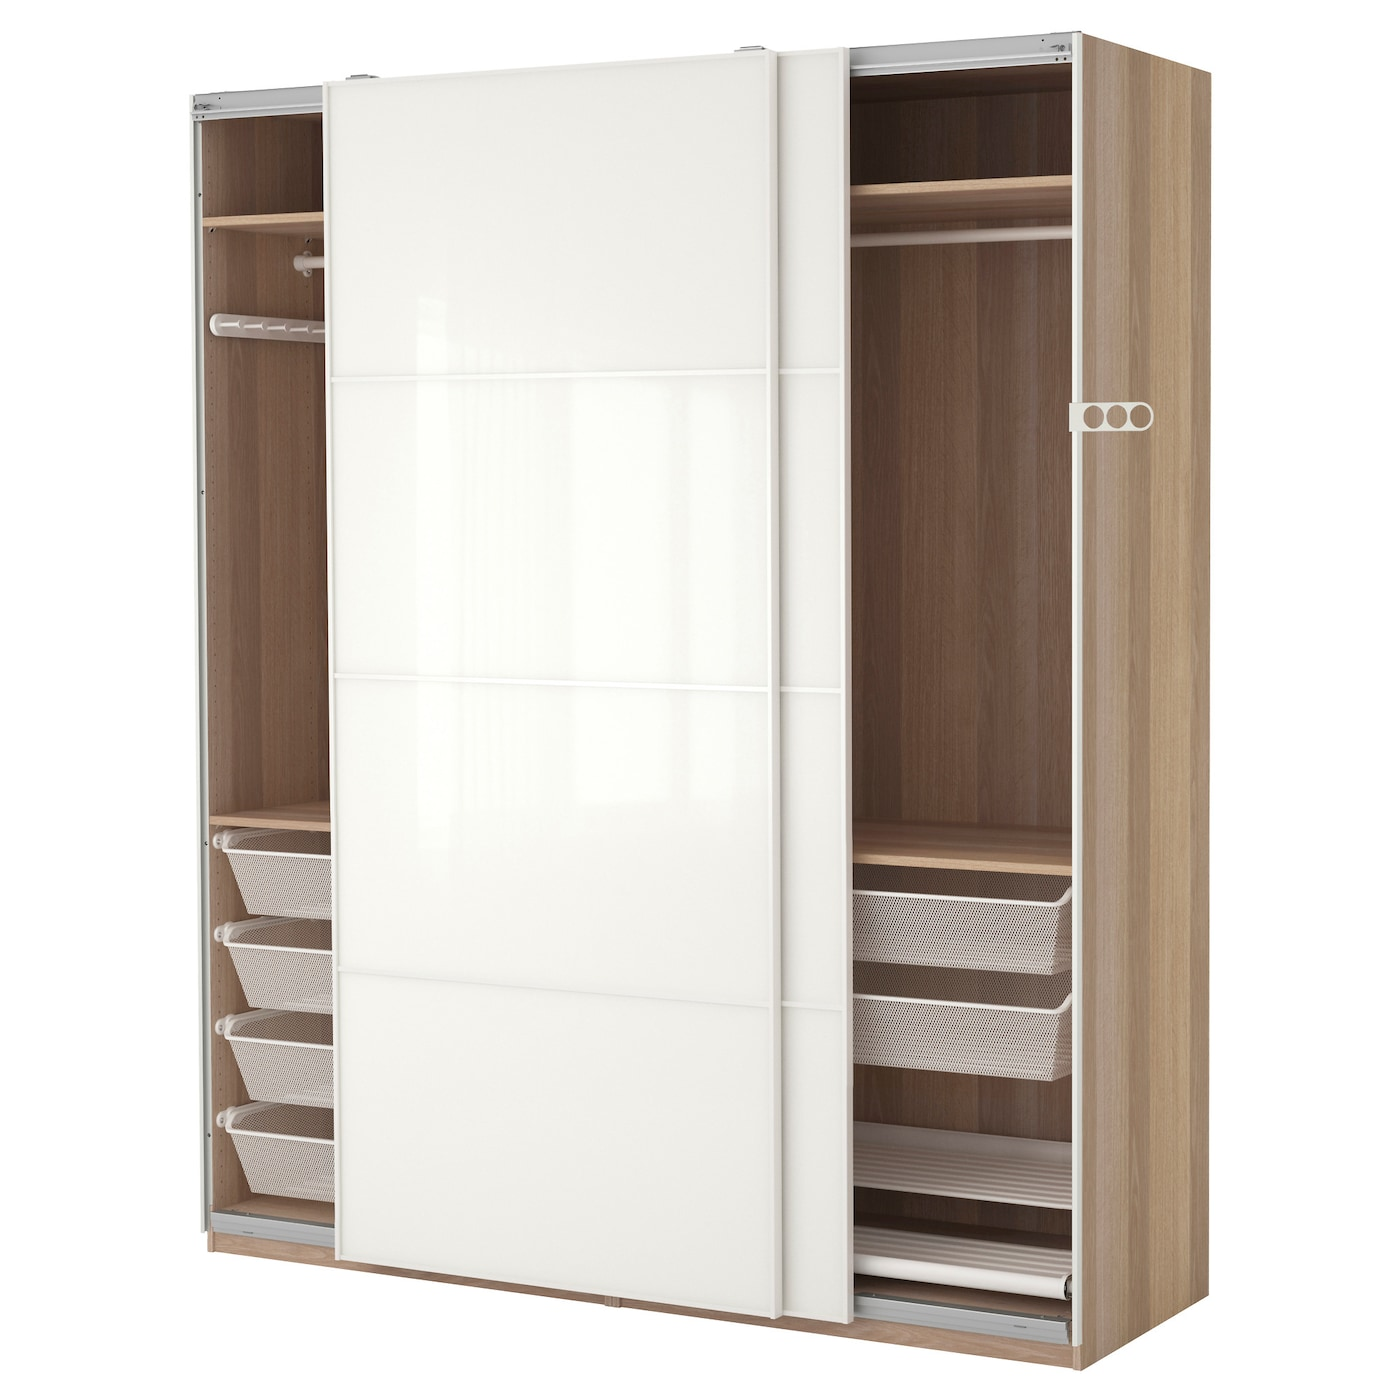 pax wardrobe white stained oak effect f rvik white glass. Black Bedroom Furniture Sets. Home Design Ideas